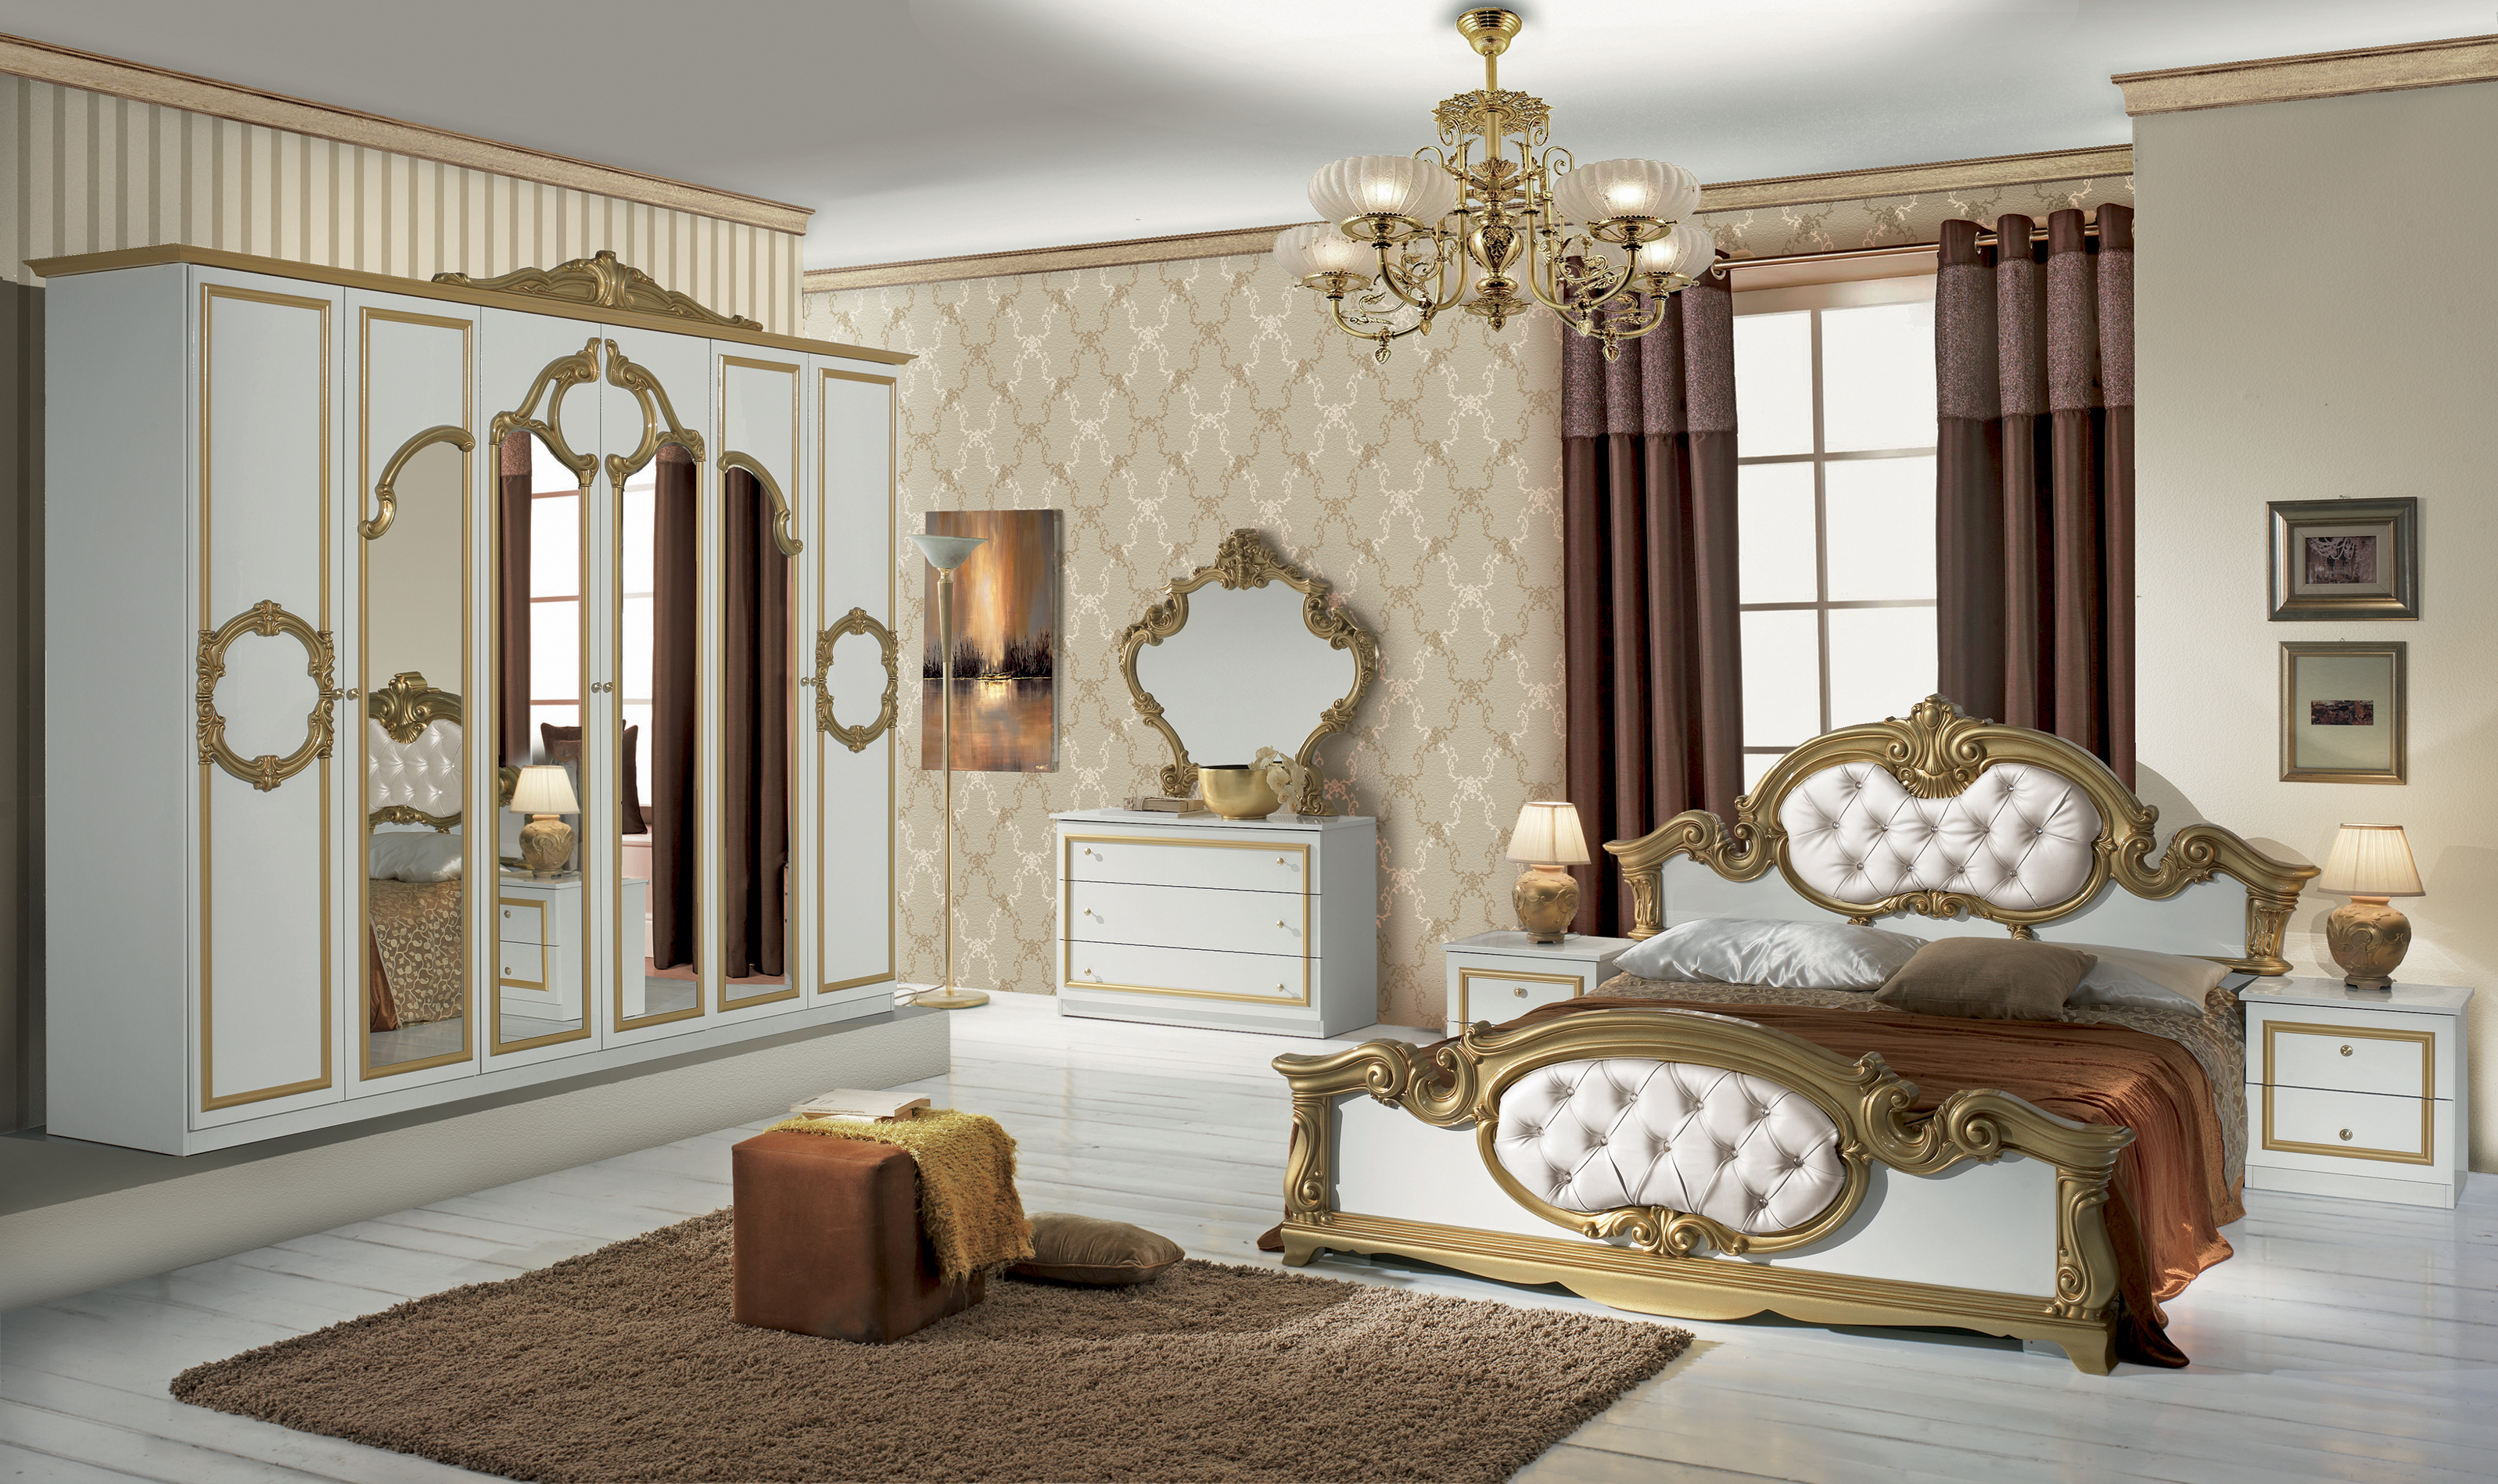 barock schlafzimmer elegantes schlafzimmer luxus schlafzimmer. Black Bedroom Furniture Sets. Home Design Ideas